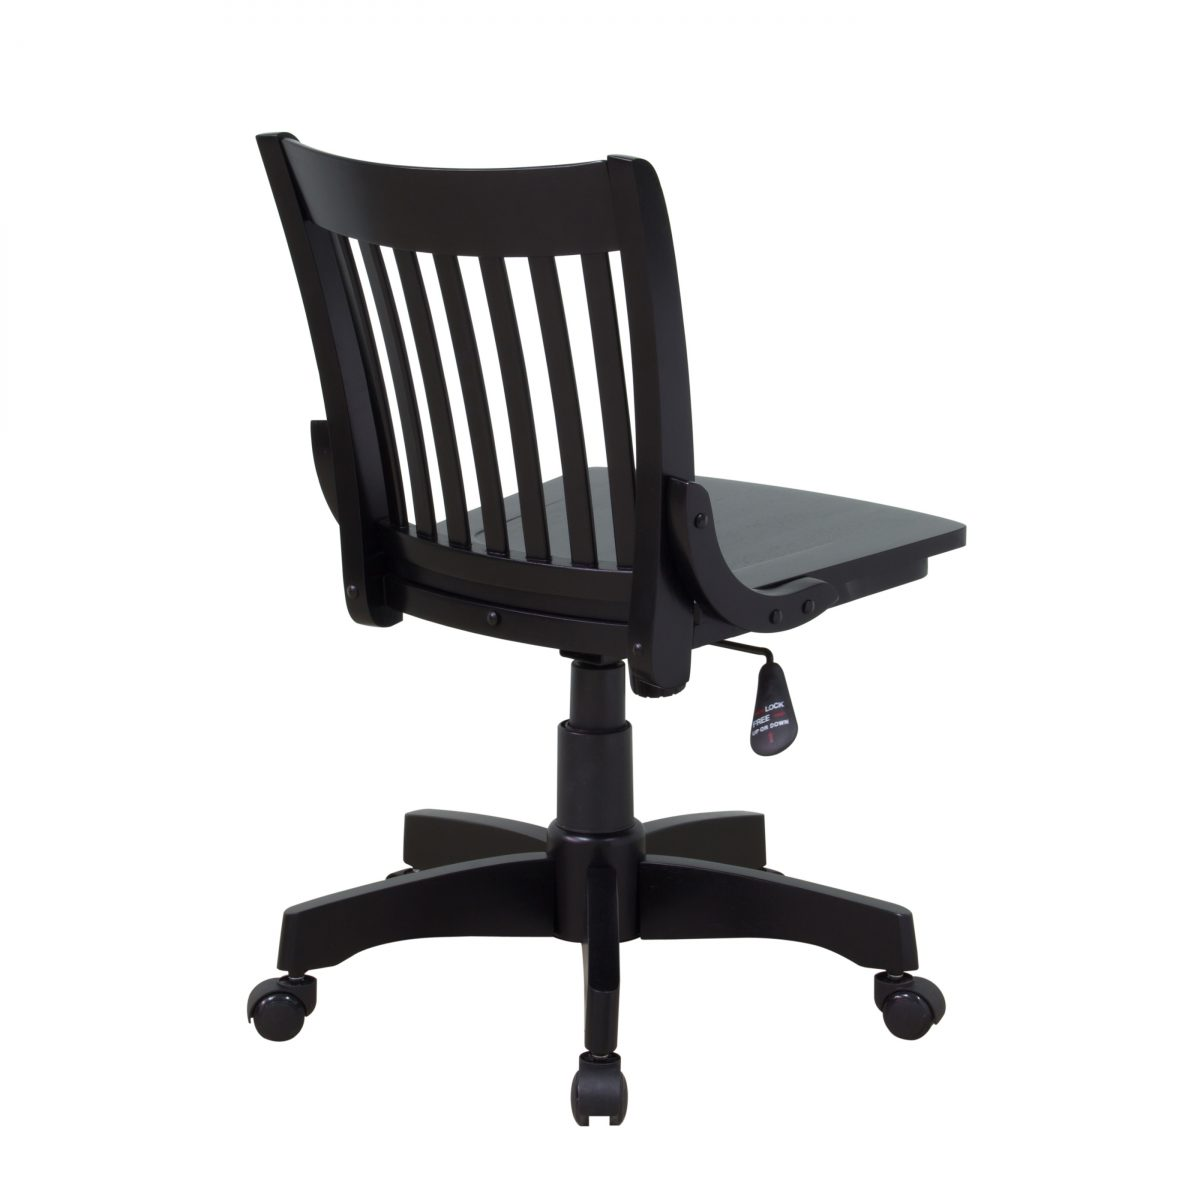 Incroyable Deluxe Armless Wood Bankers Chair With Wood Seat Black Finish 101BK